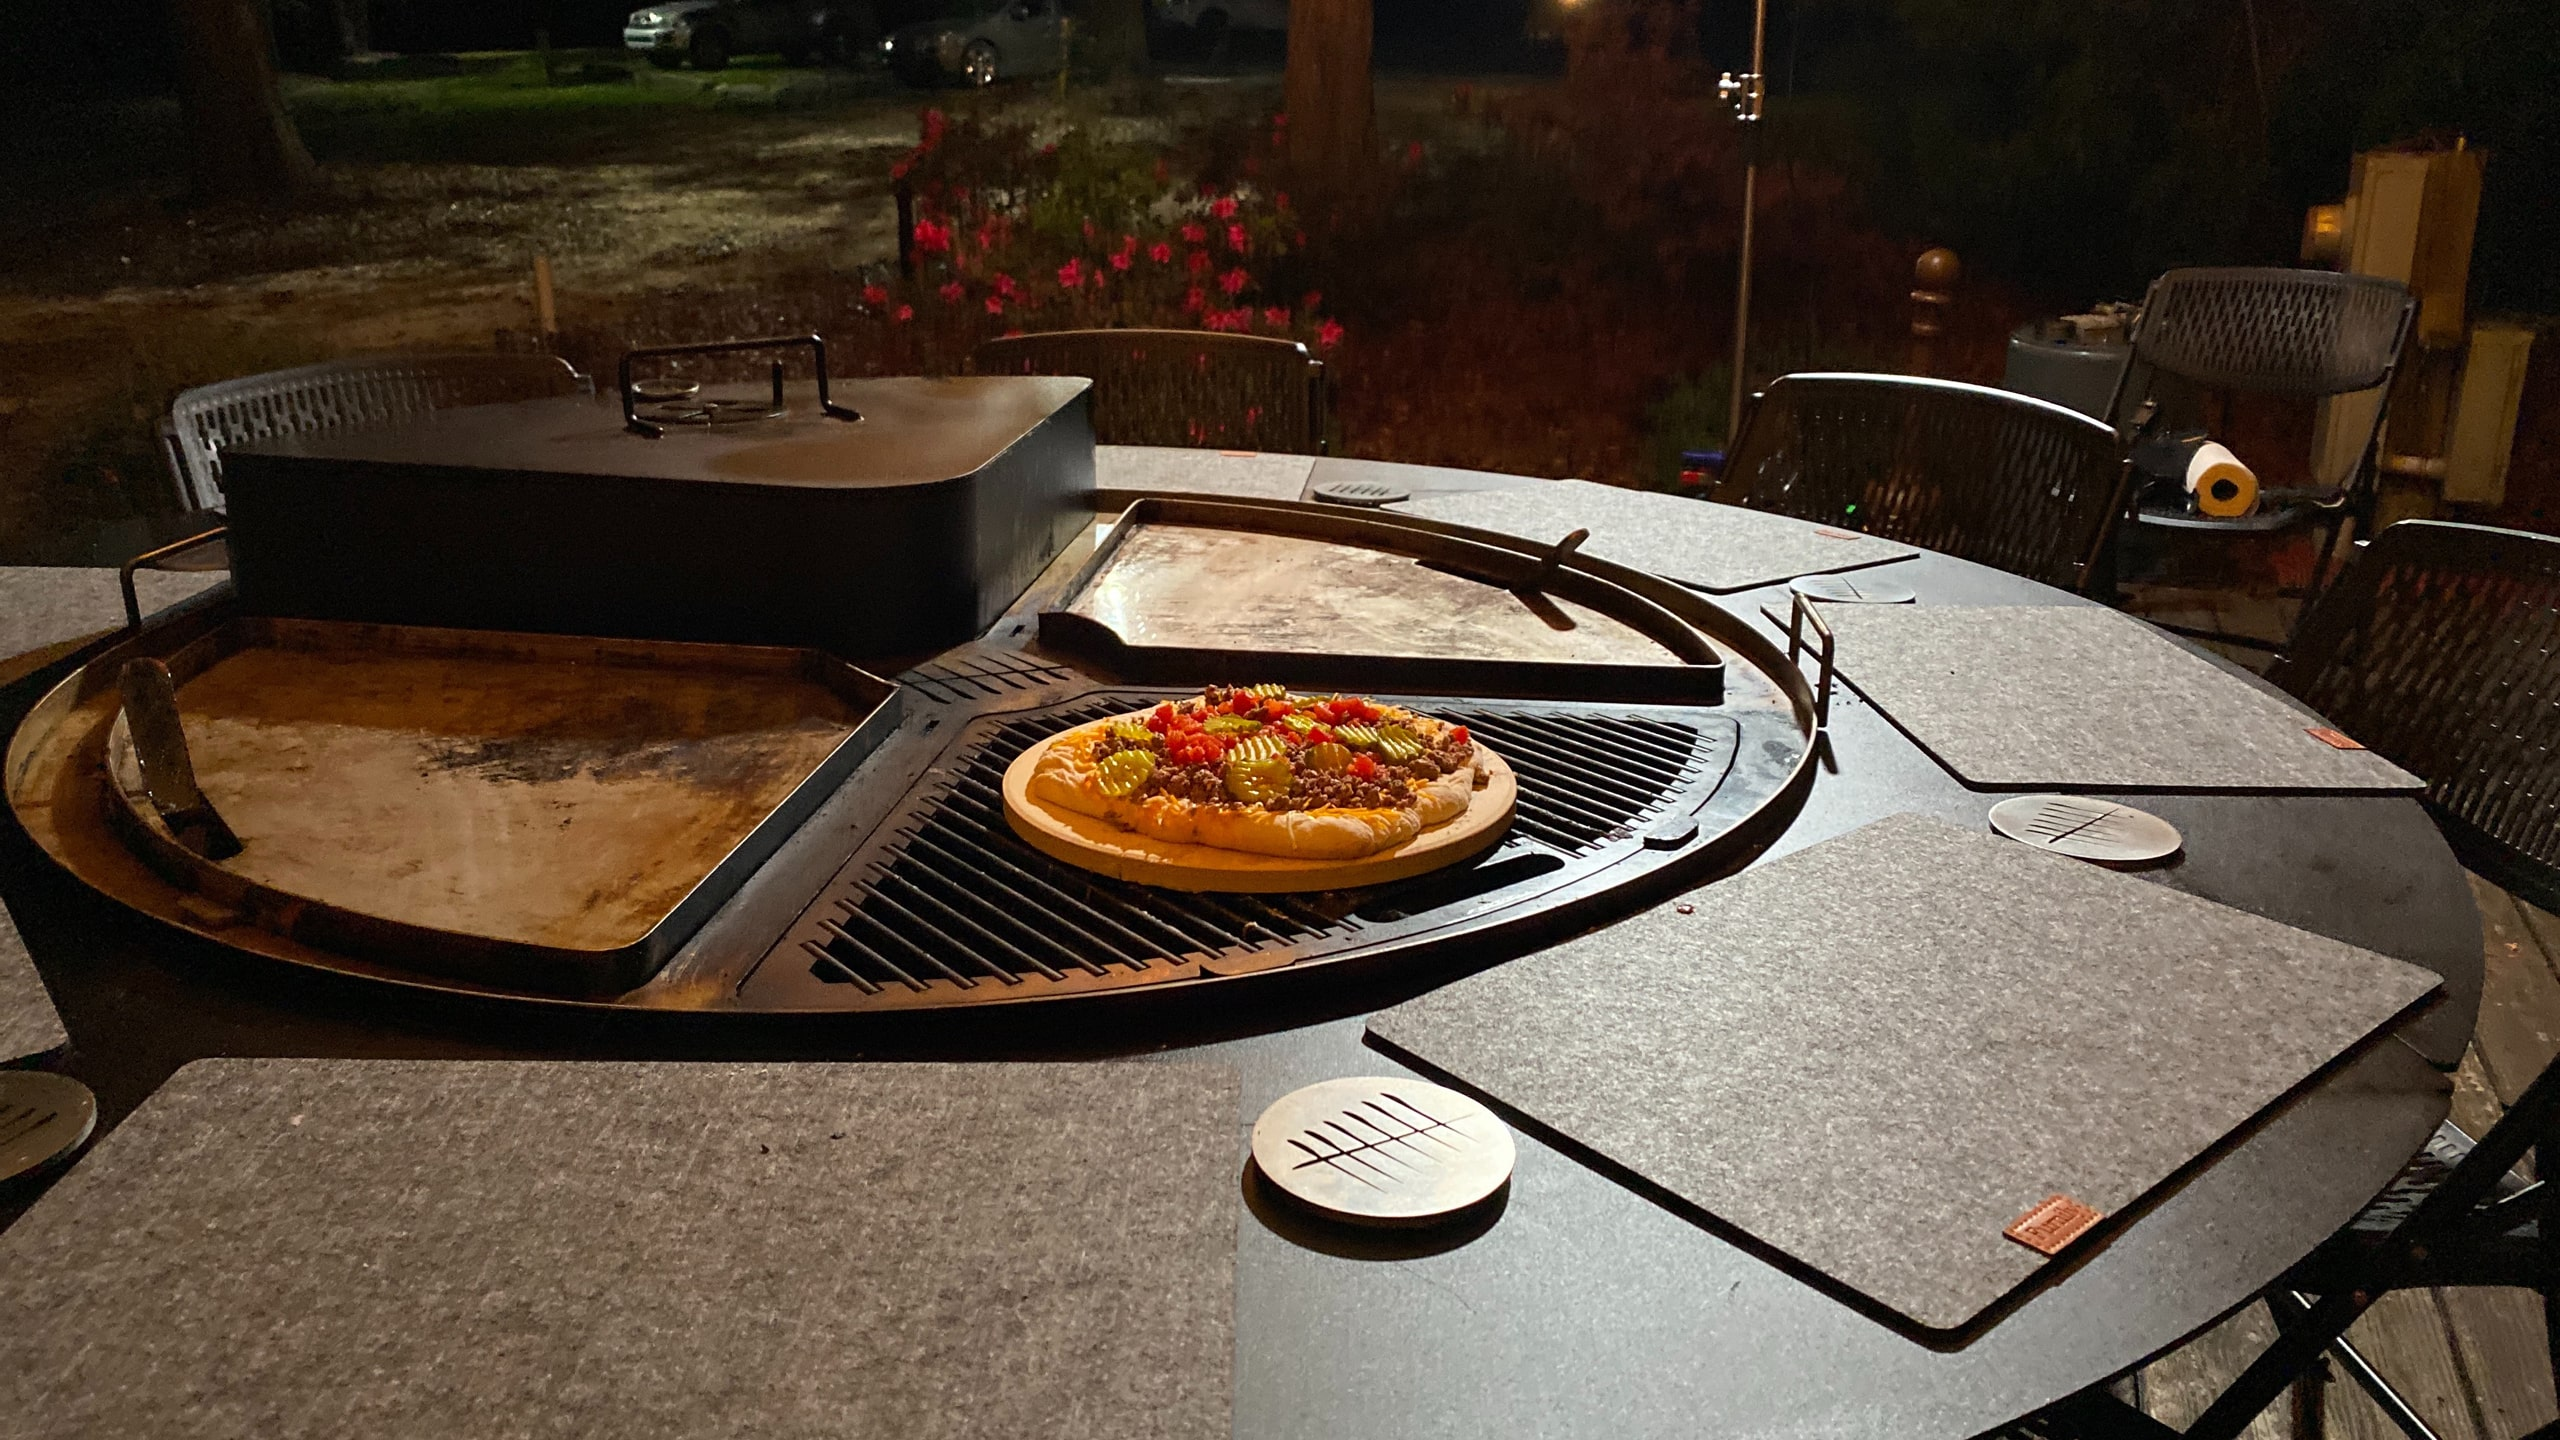 A cooked pizza served on an otherwise empty gather grill